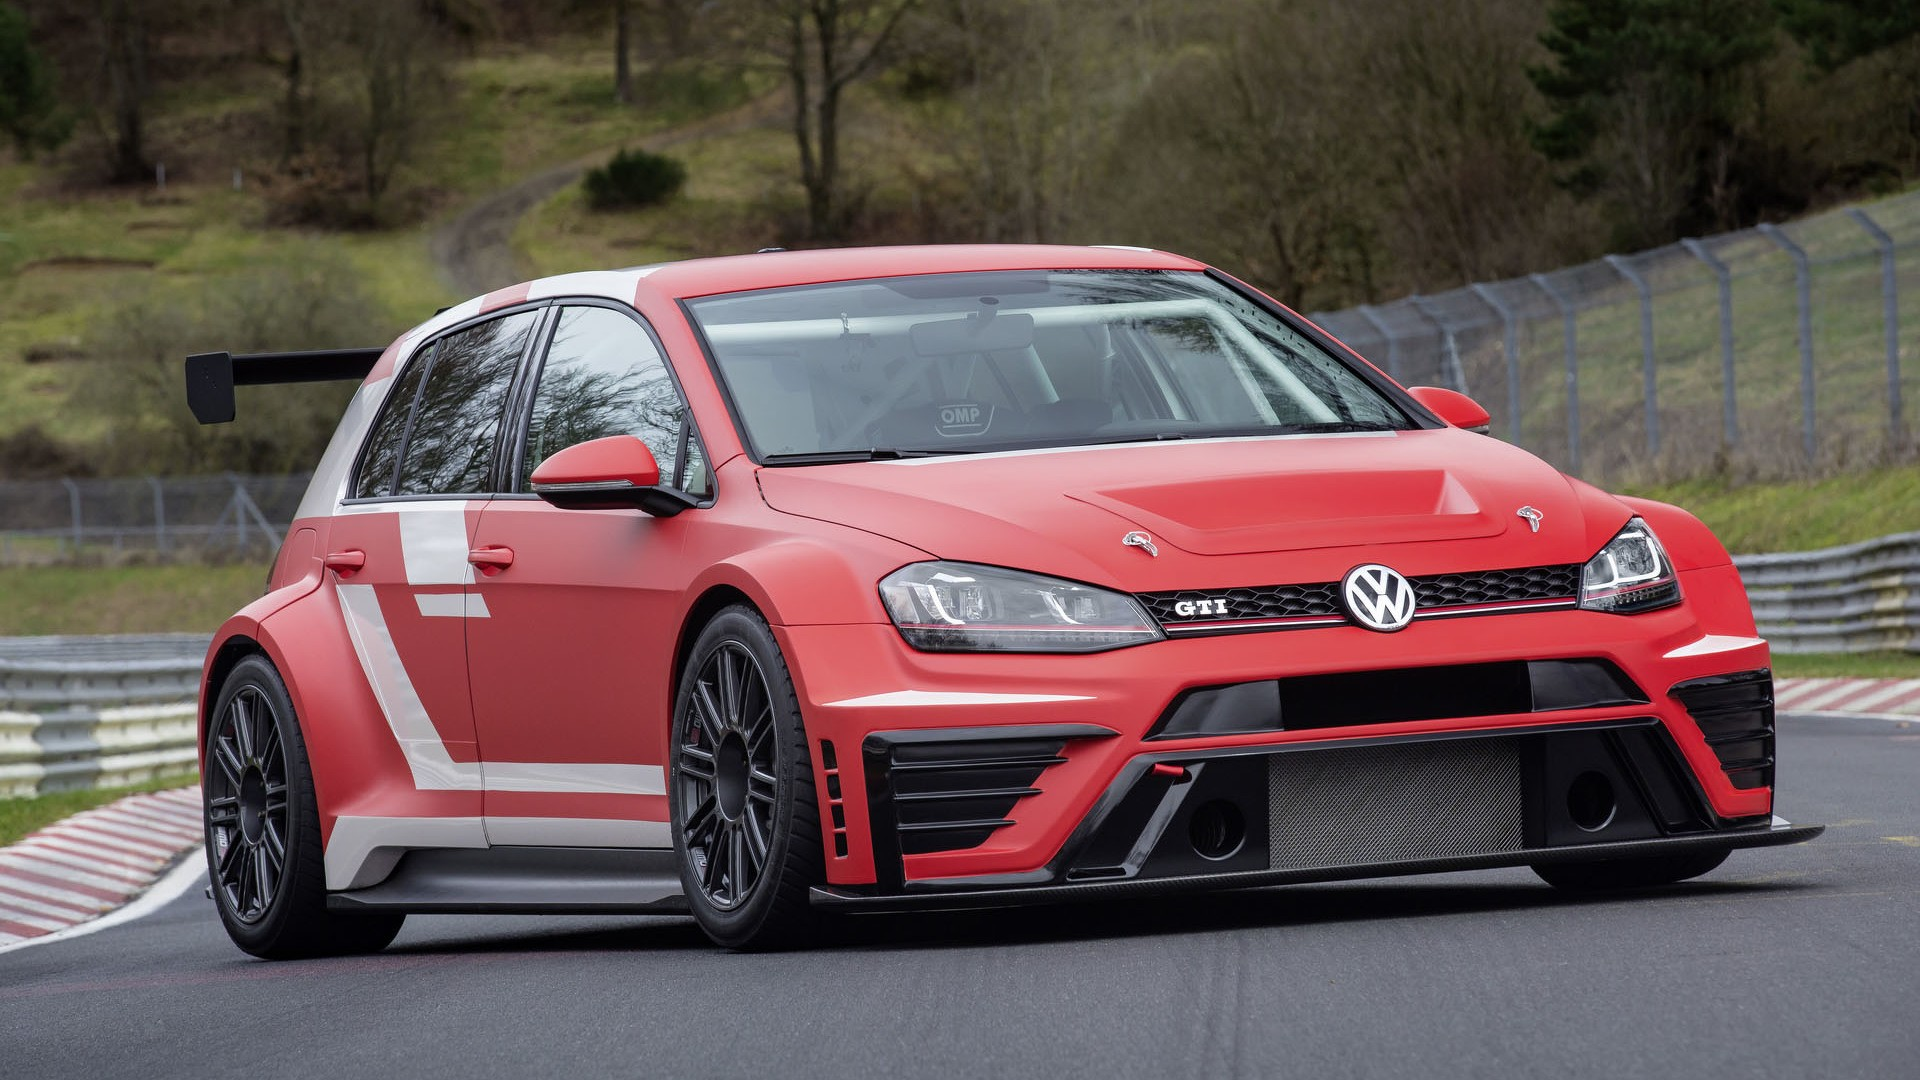 VW Golf GTI Clubsport S Revealed, Sets New Nurburgring FWD Record - autoevolution